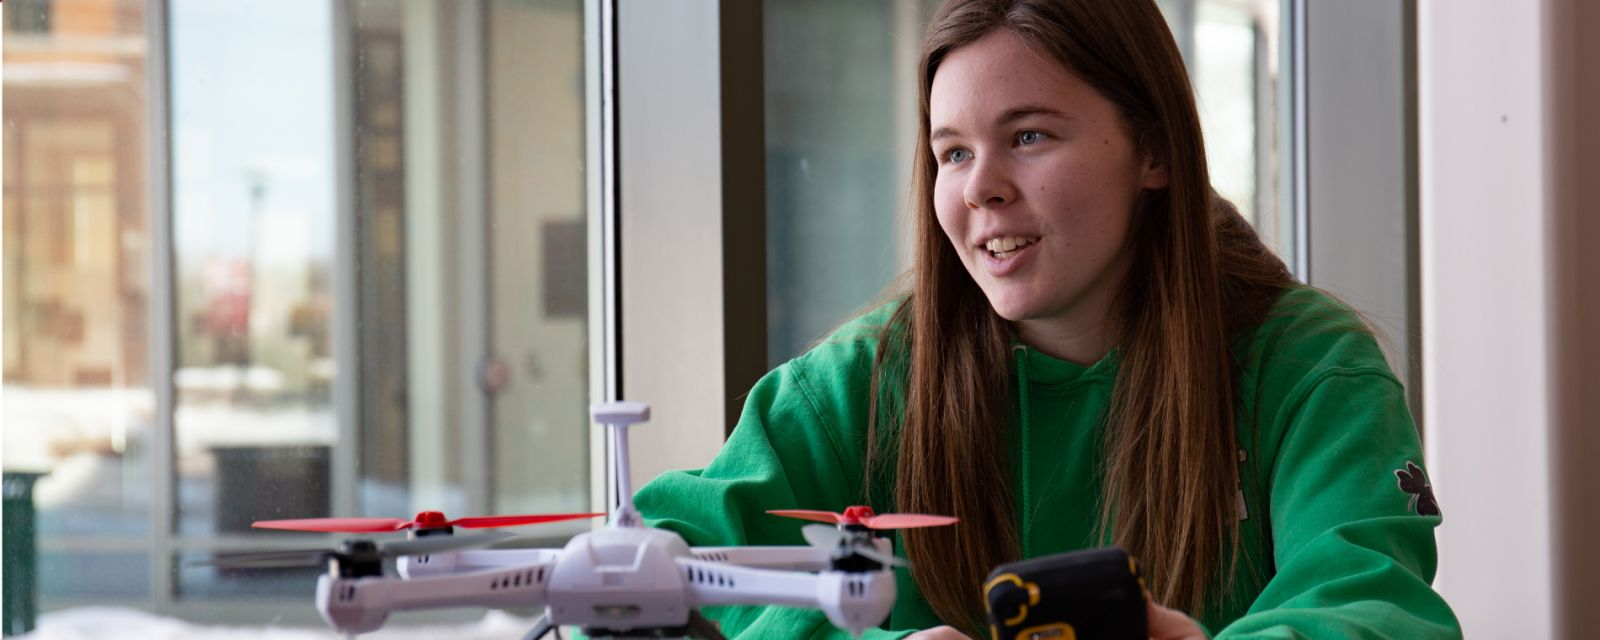 Ag student and drone